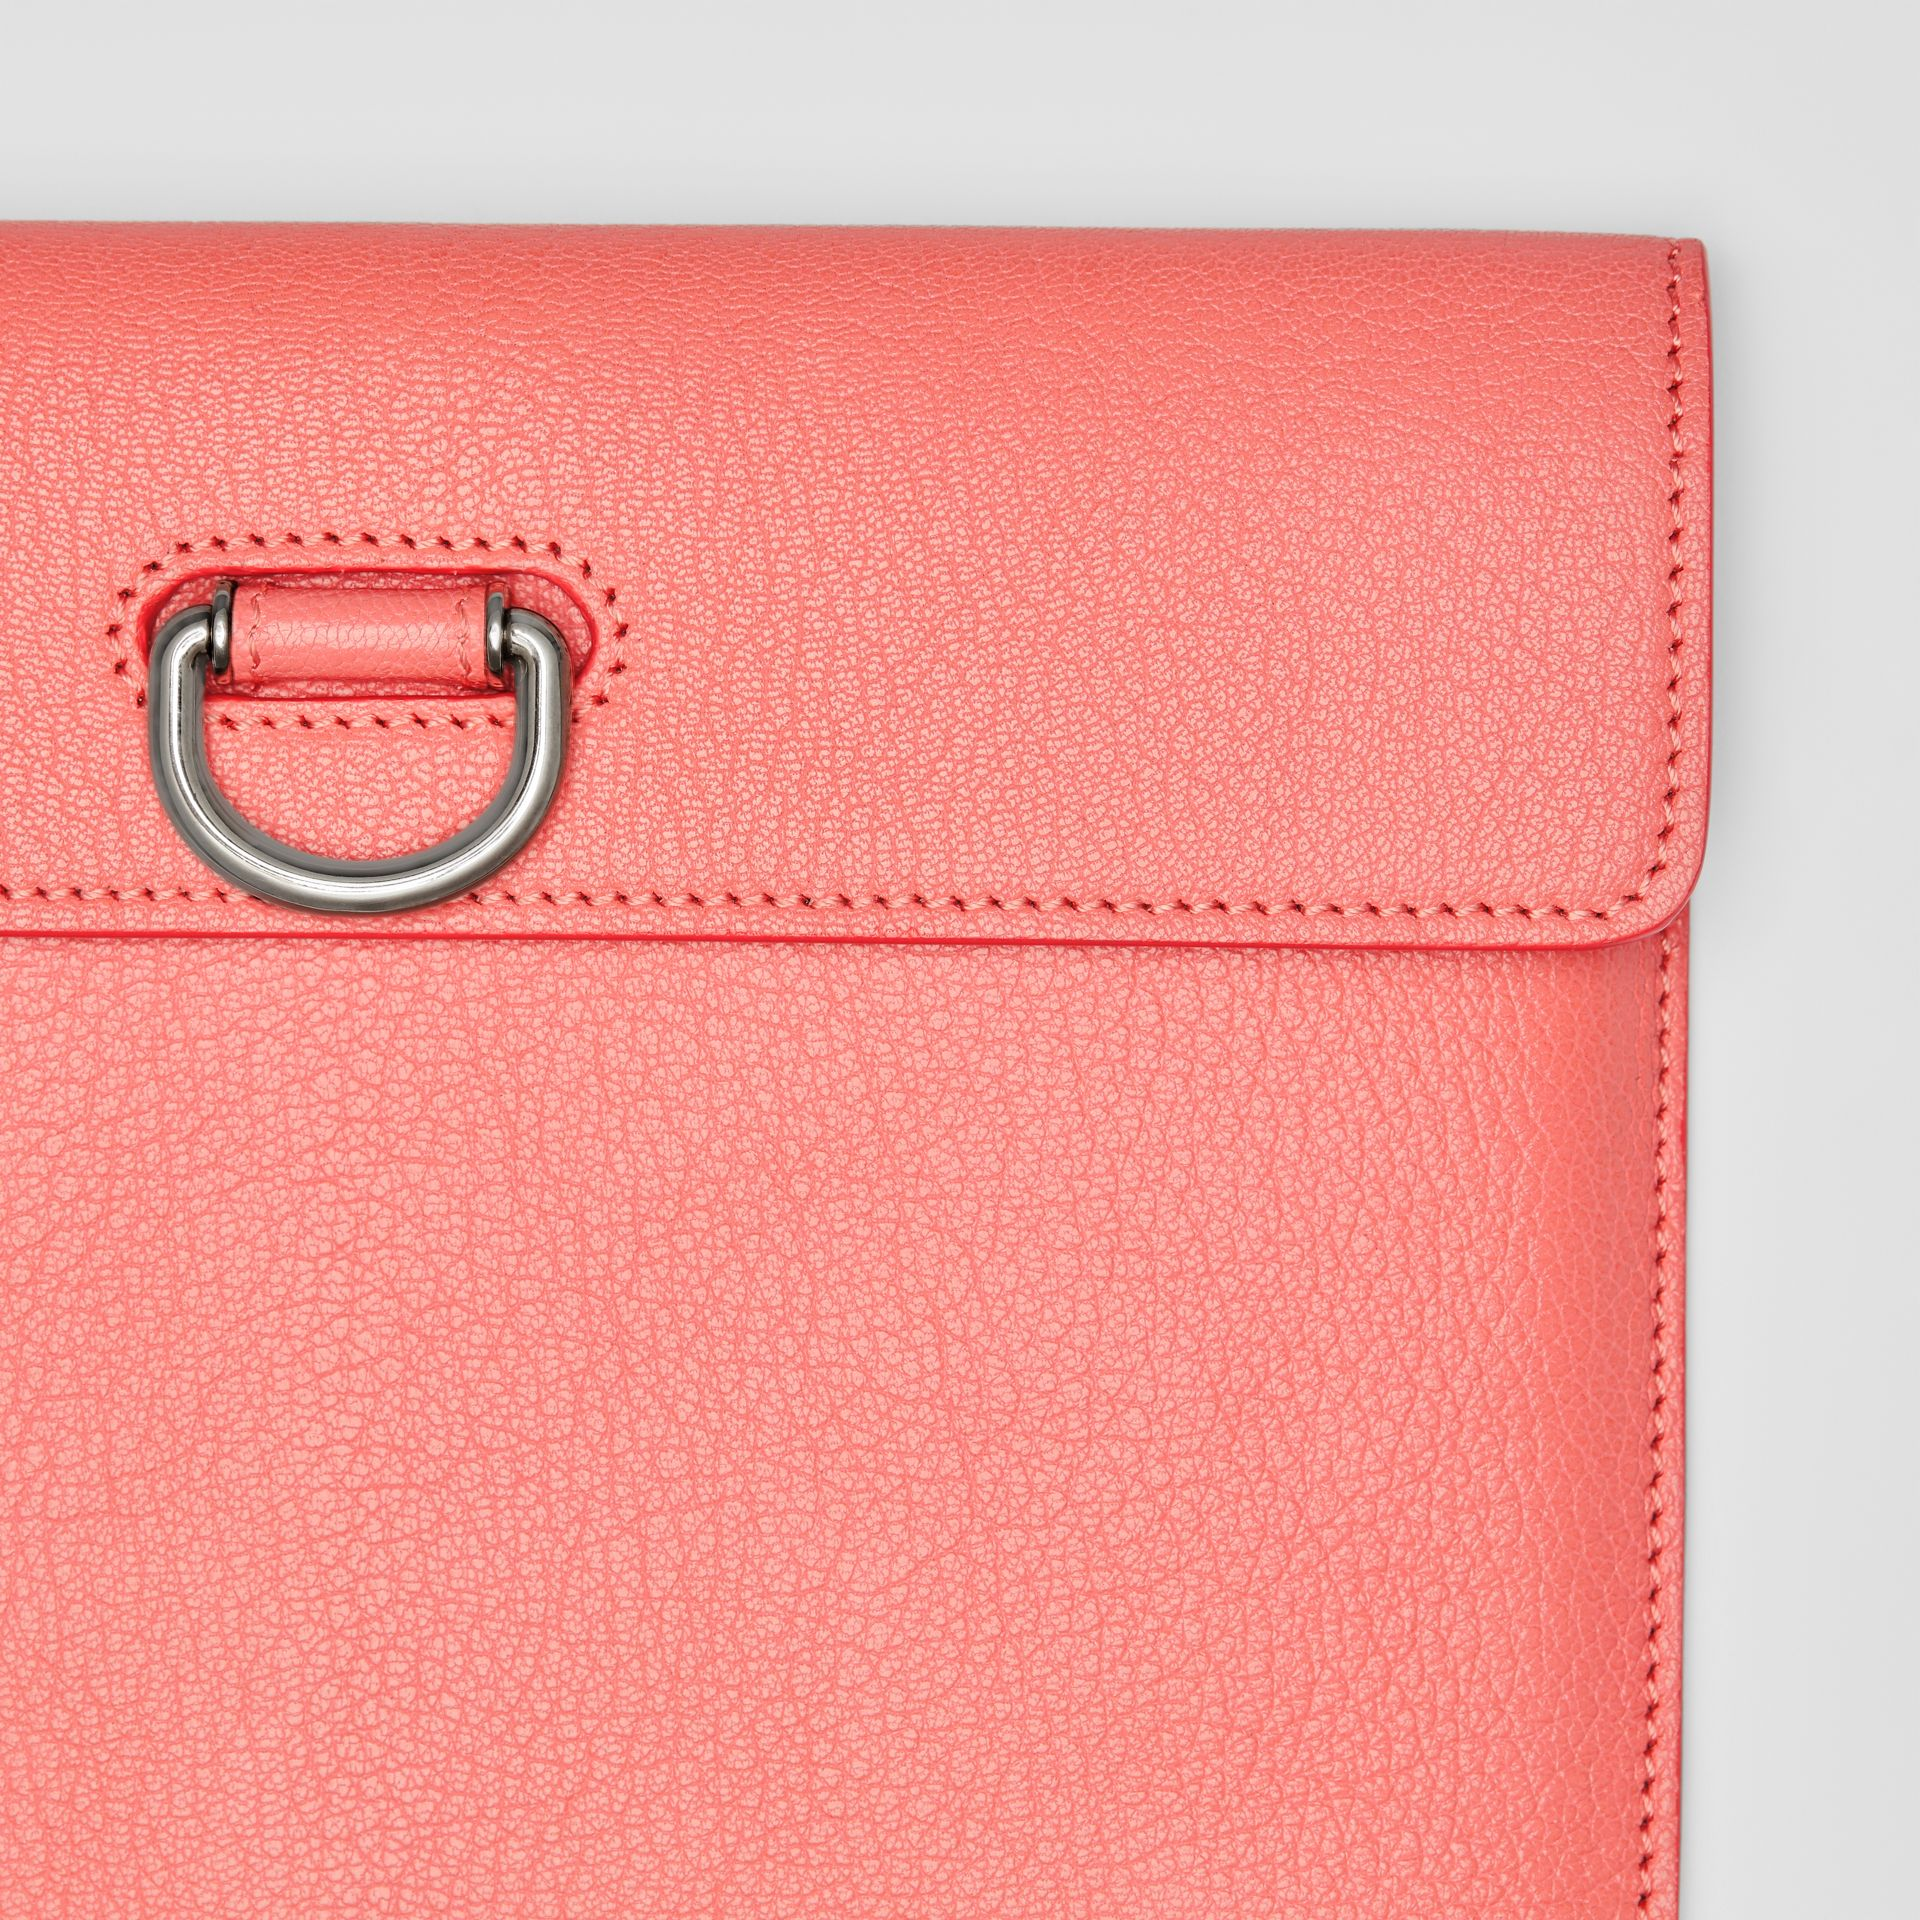 D-ring Leather Pouch with Zip Coin Case in Bright Coral Pink - Women | Burberry - gallery image 1